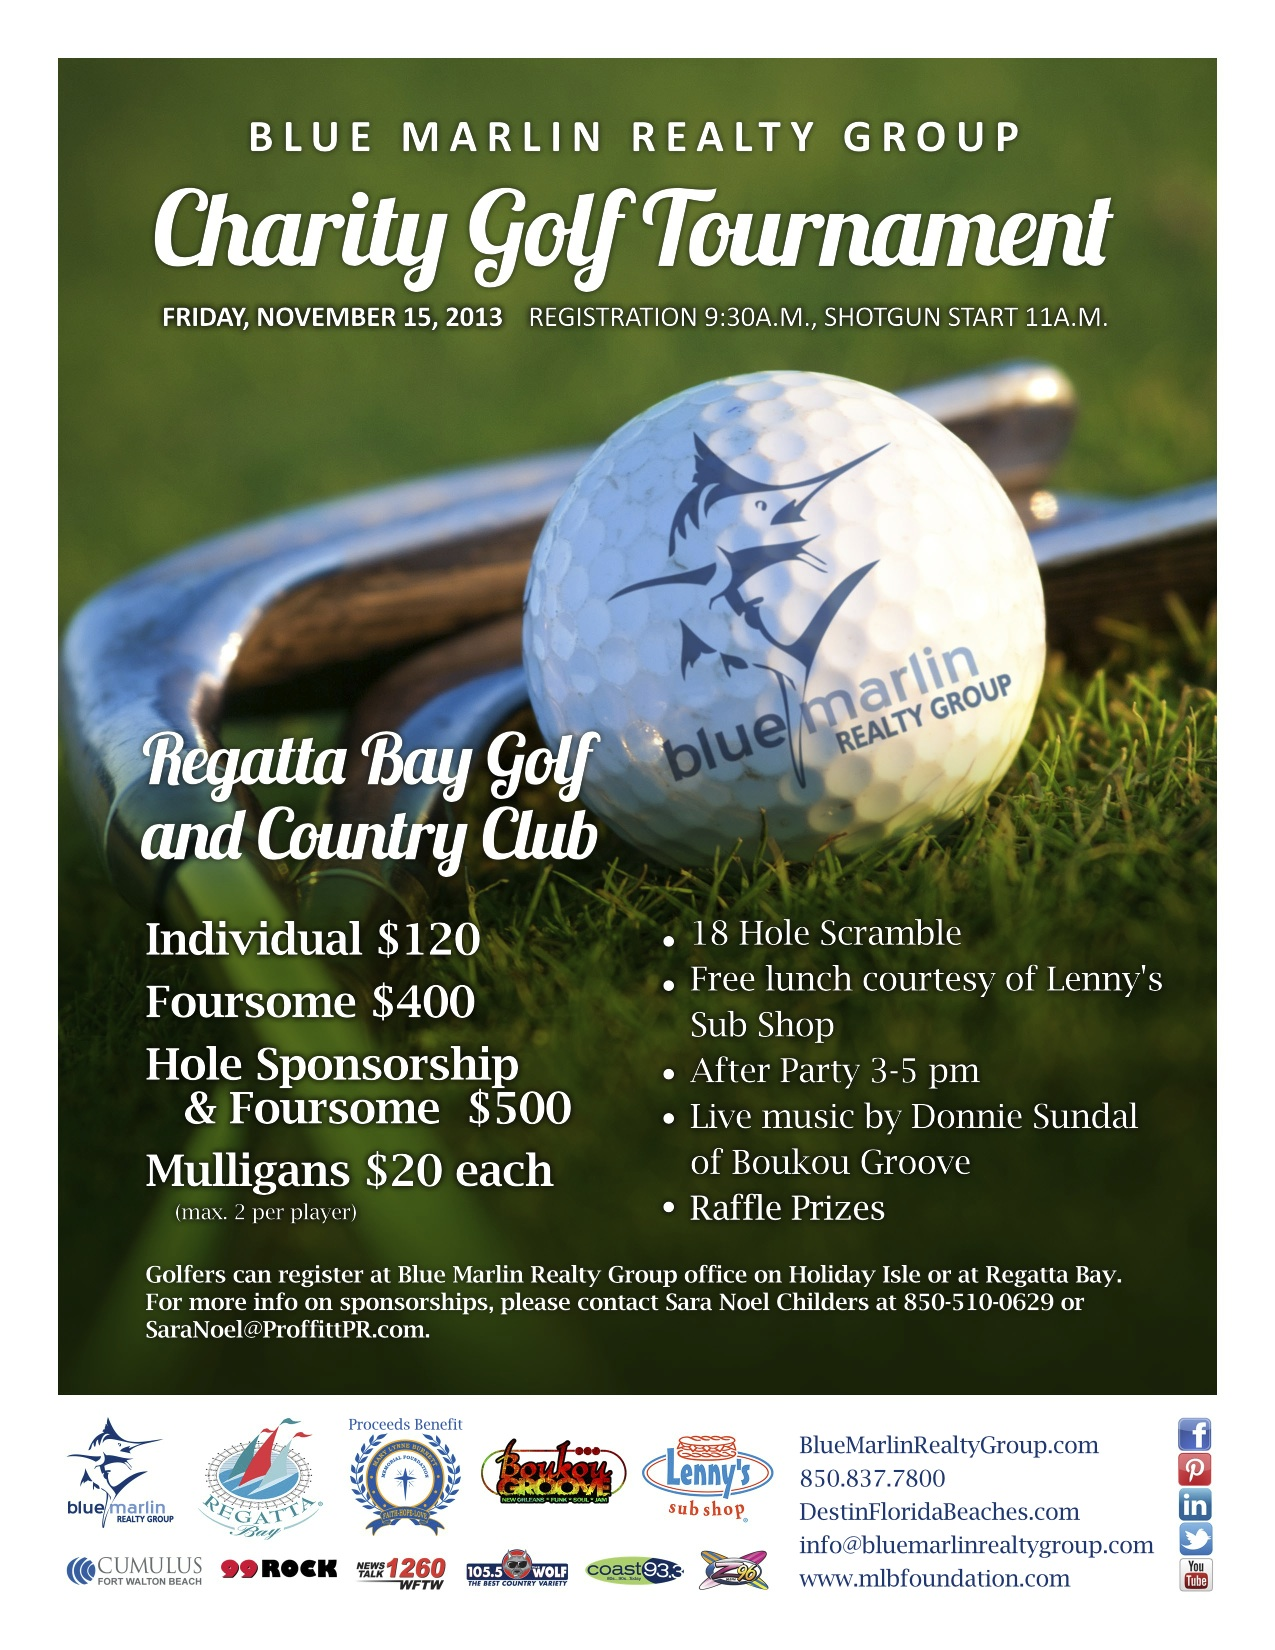 blue marlin realty charity golf tournament november 15 2013